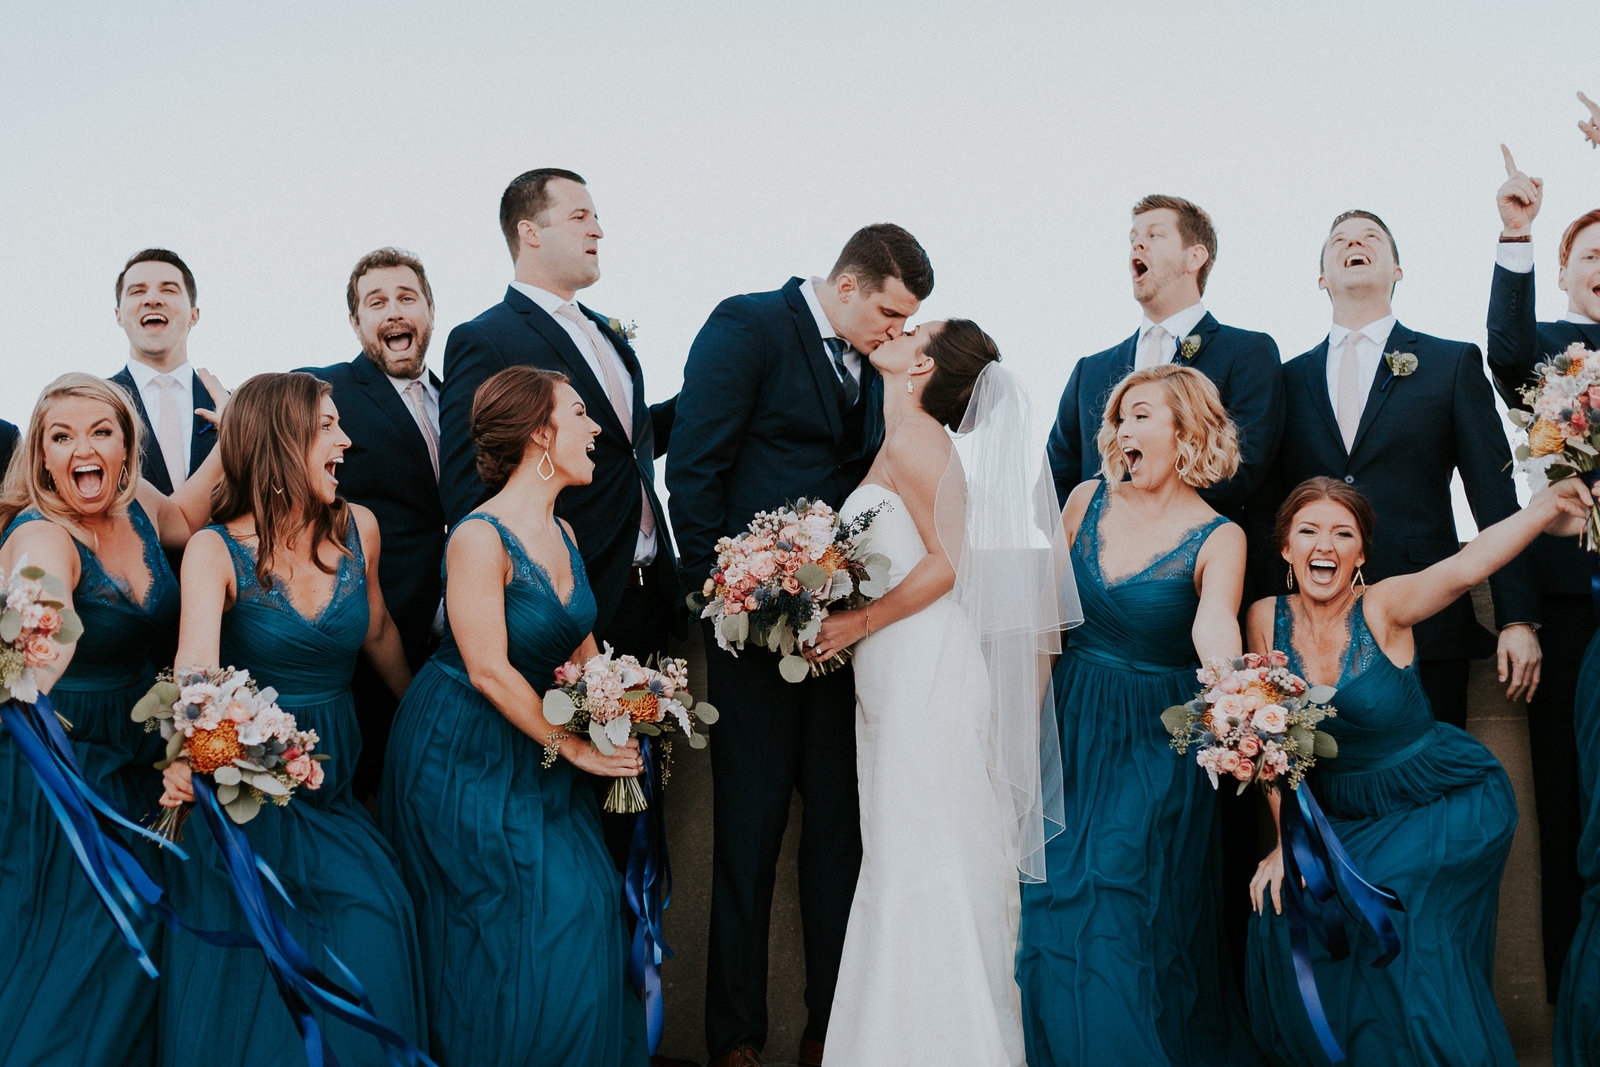 Bridal+Party+Lauren+Jones+photography